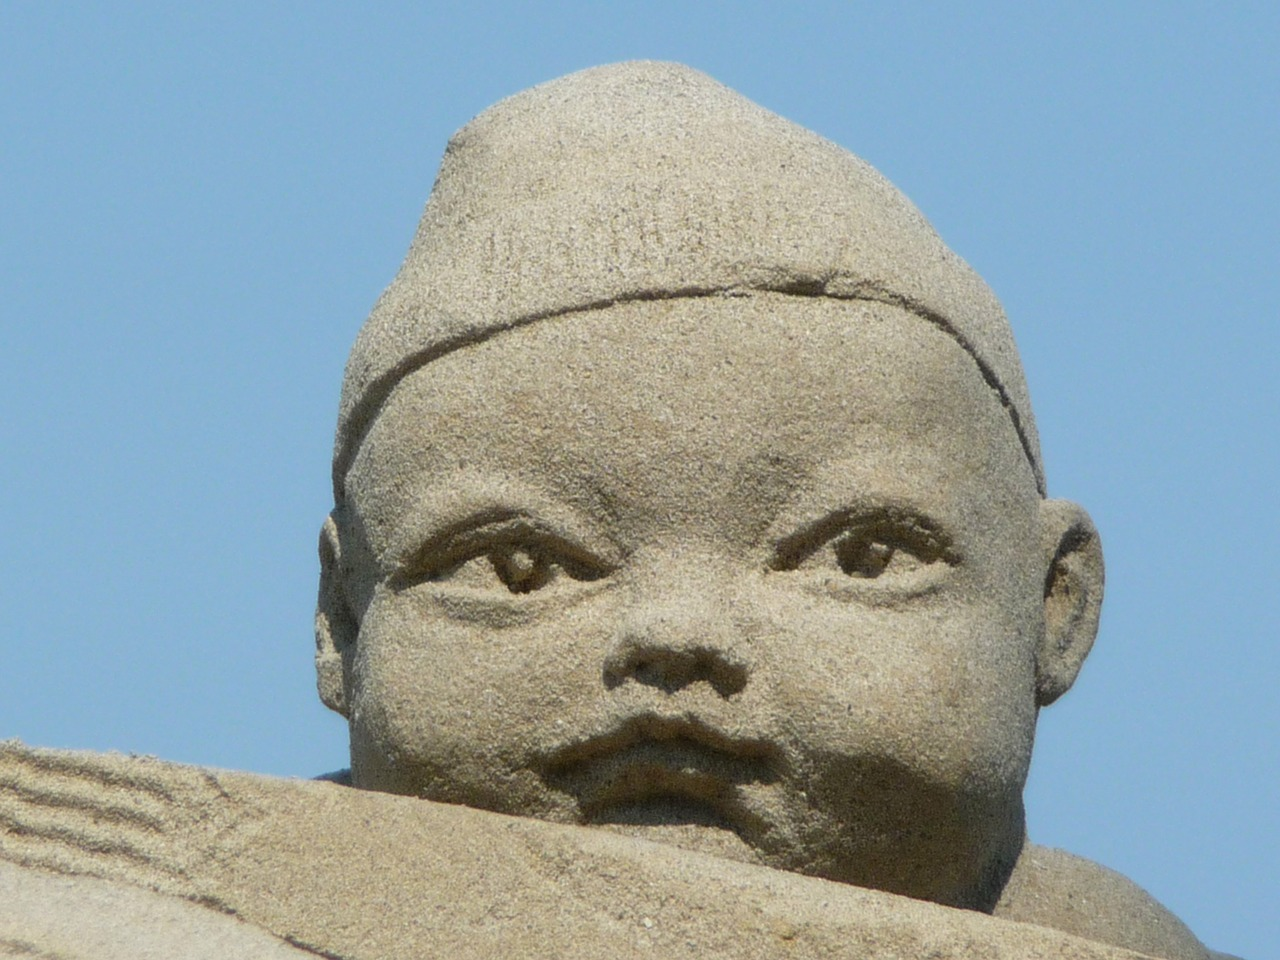 sand sculpture baby face free photo